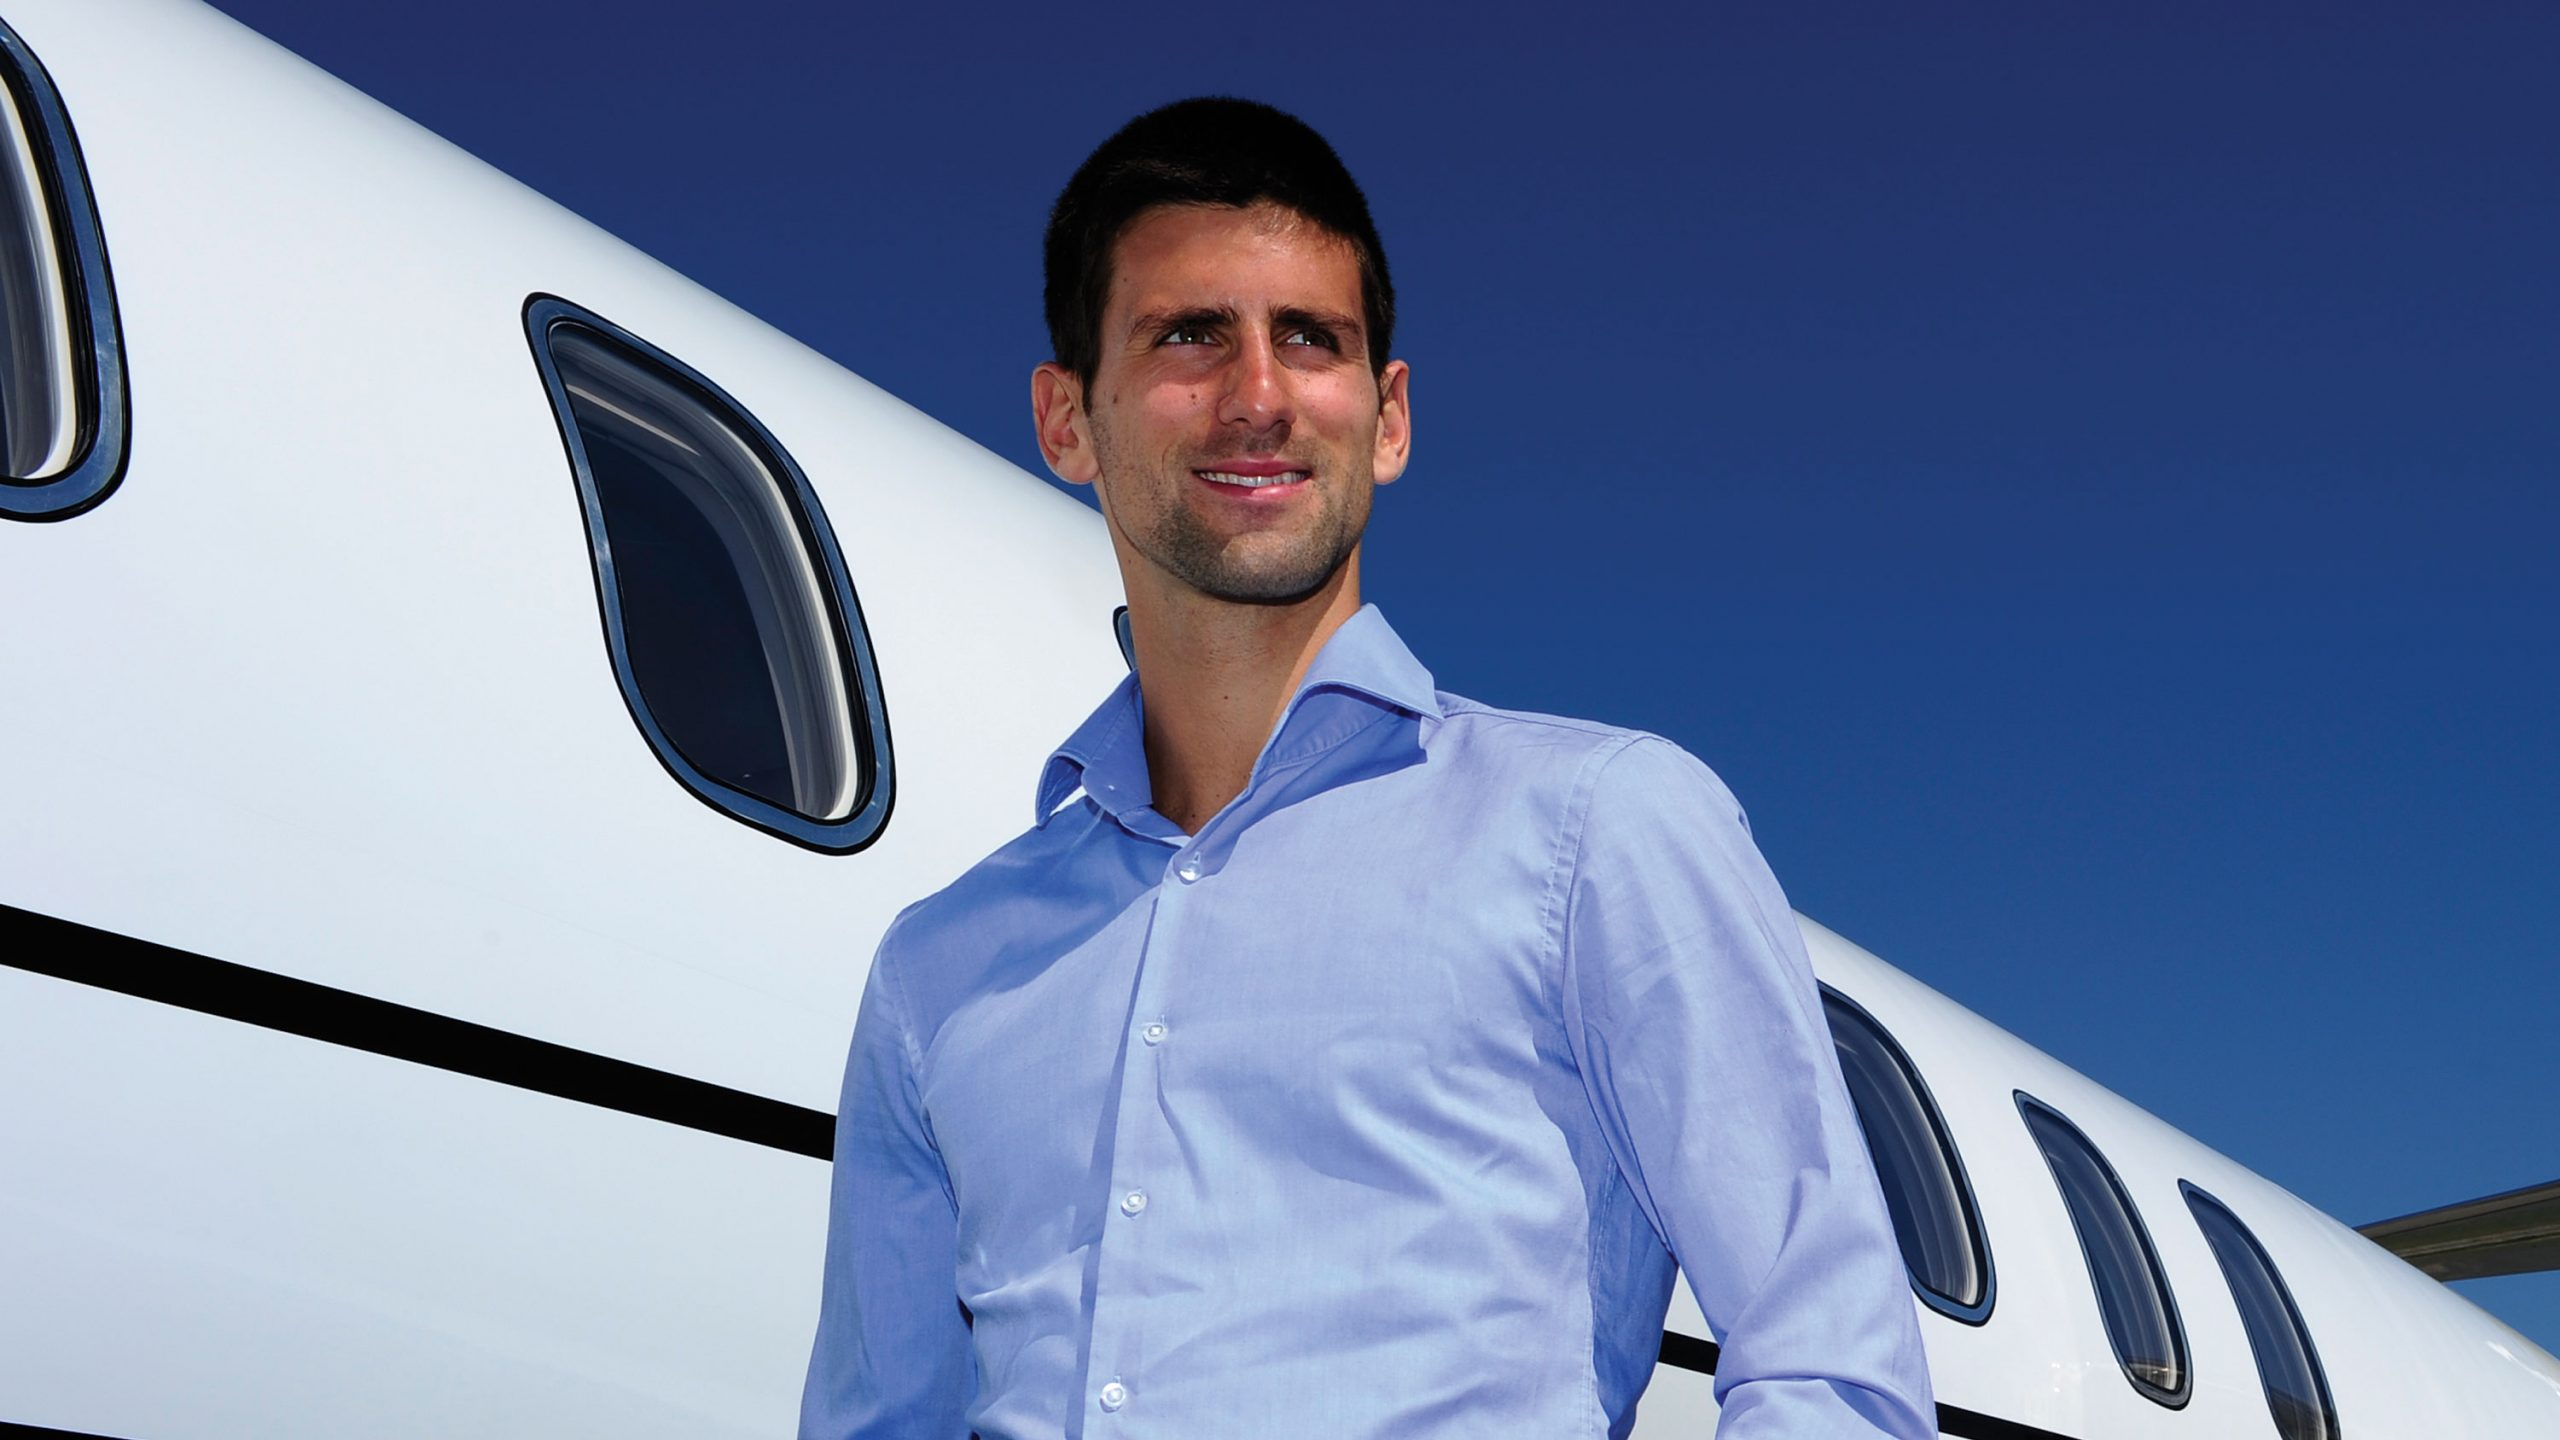 Tennis Star Novak Djokovic Finances a Private Jet for Medical Treatment of Baby Girl